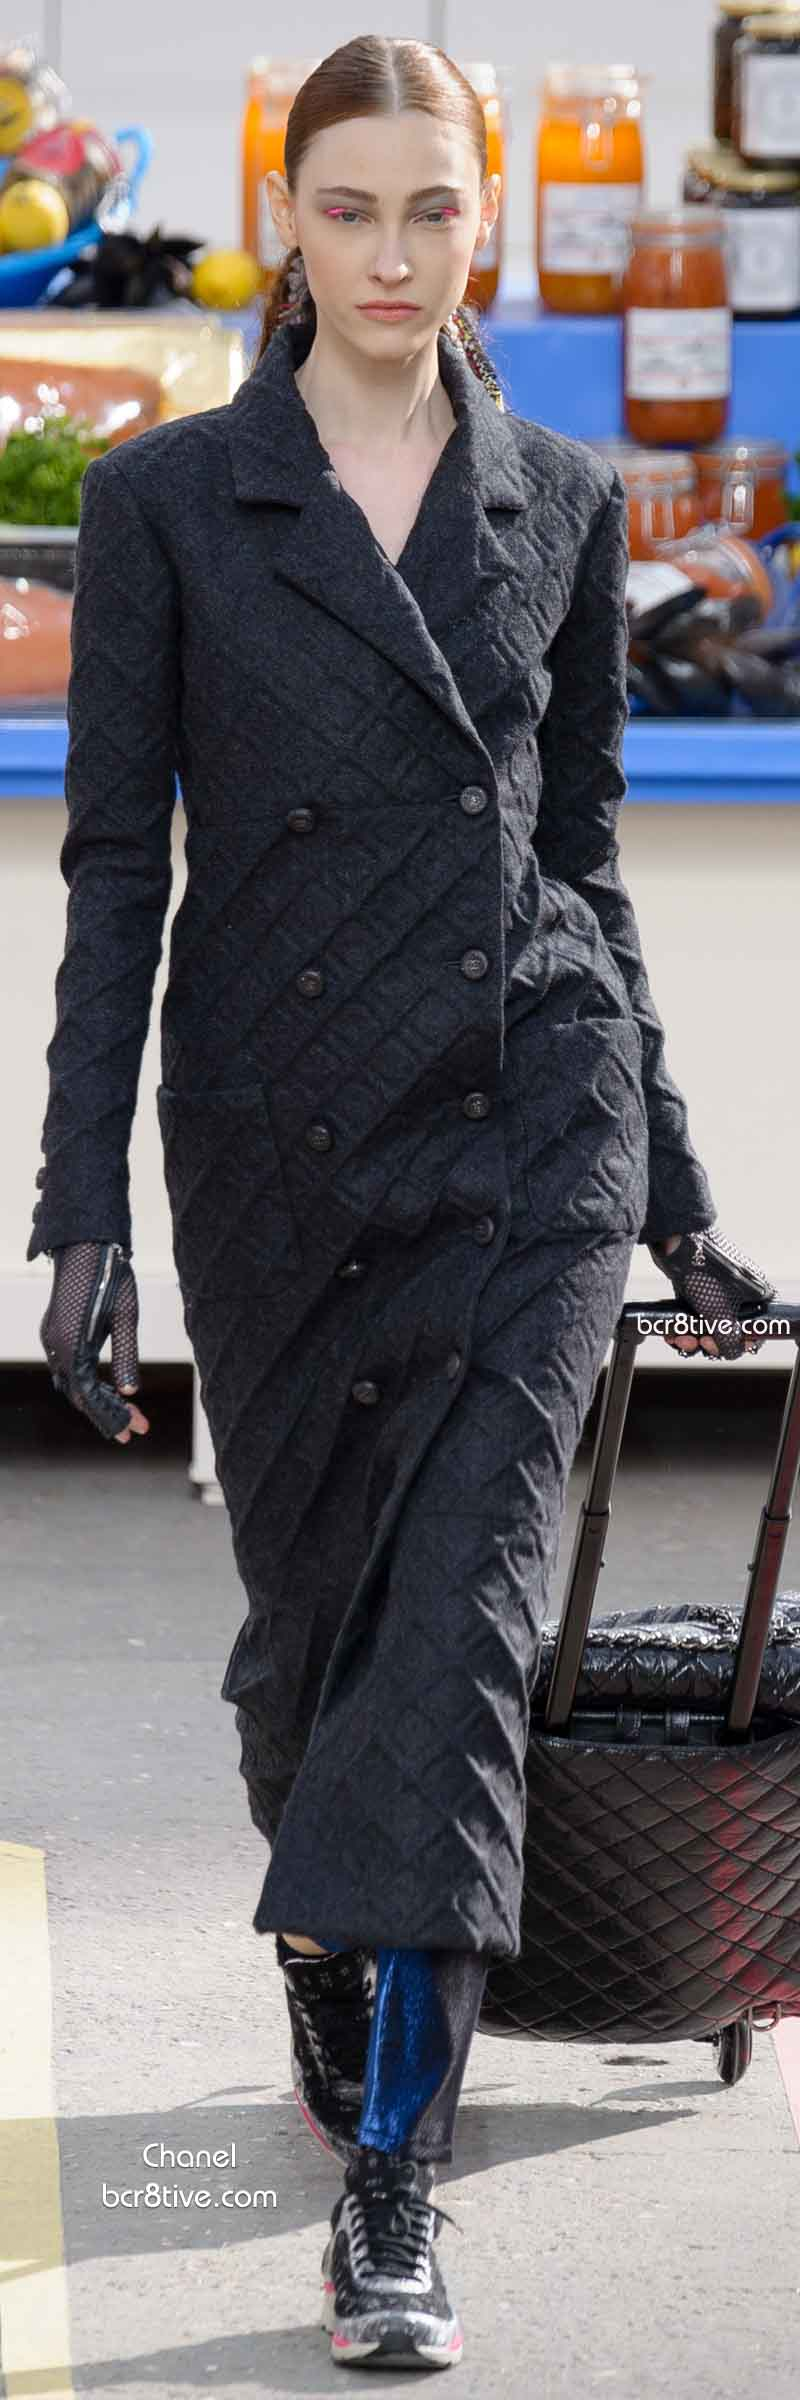 Fall 2014 Menswear Inspired Fashion - Chanel